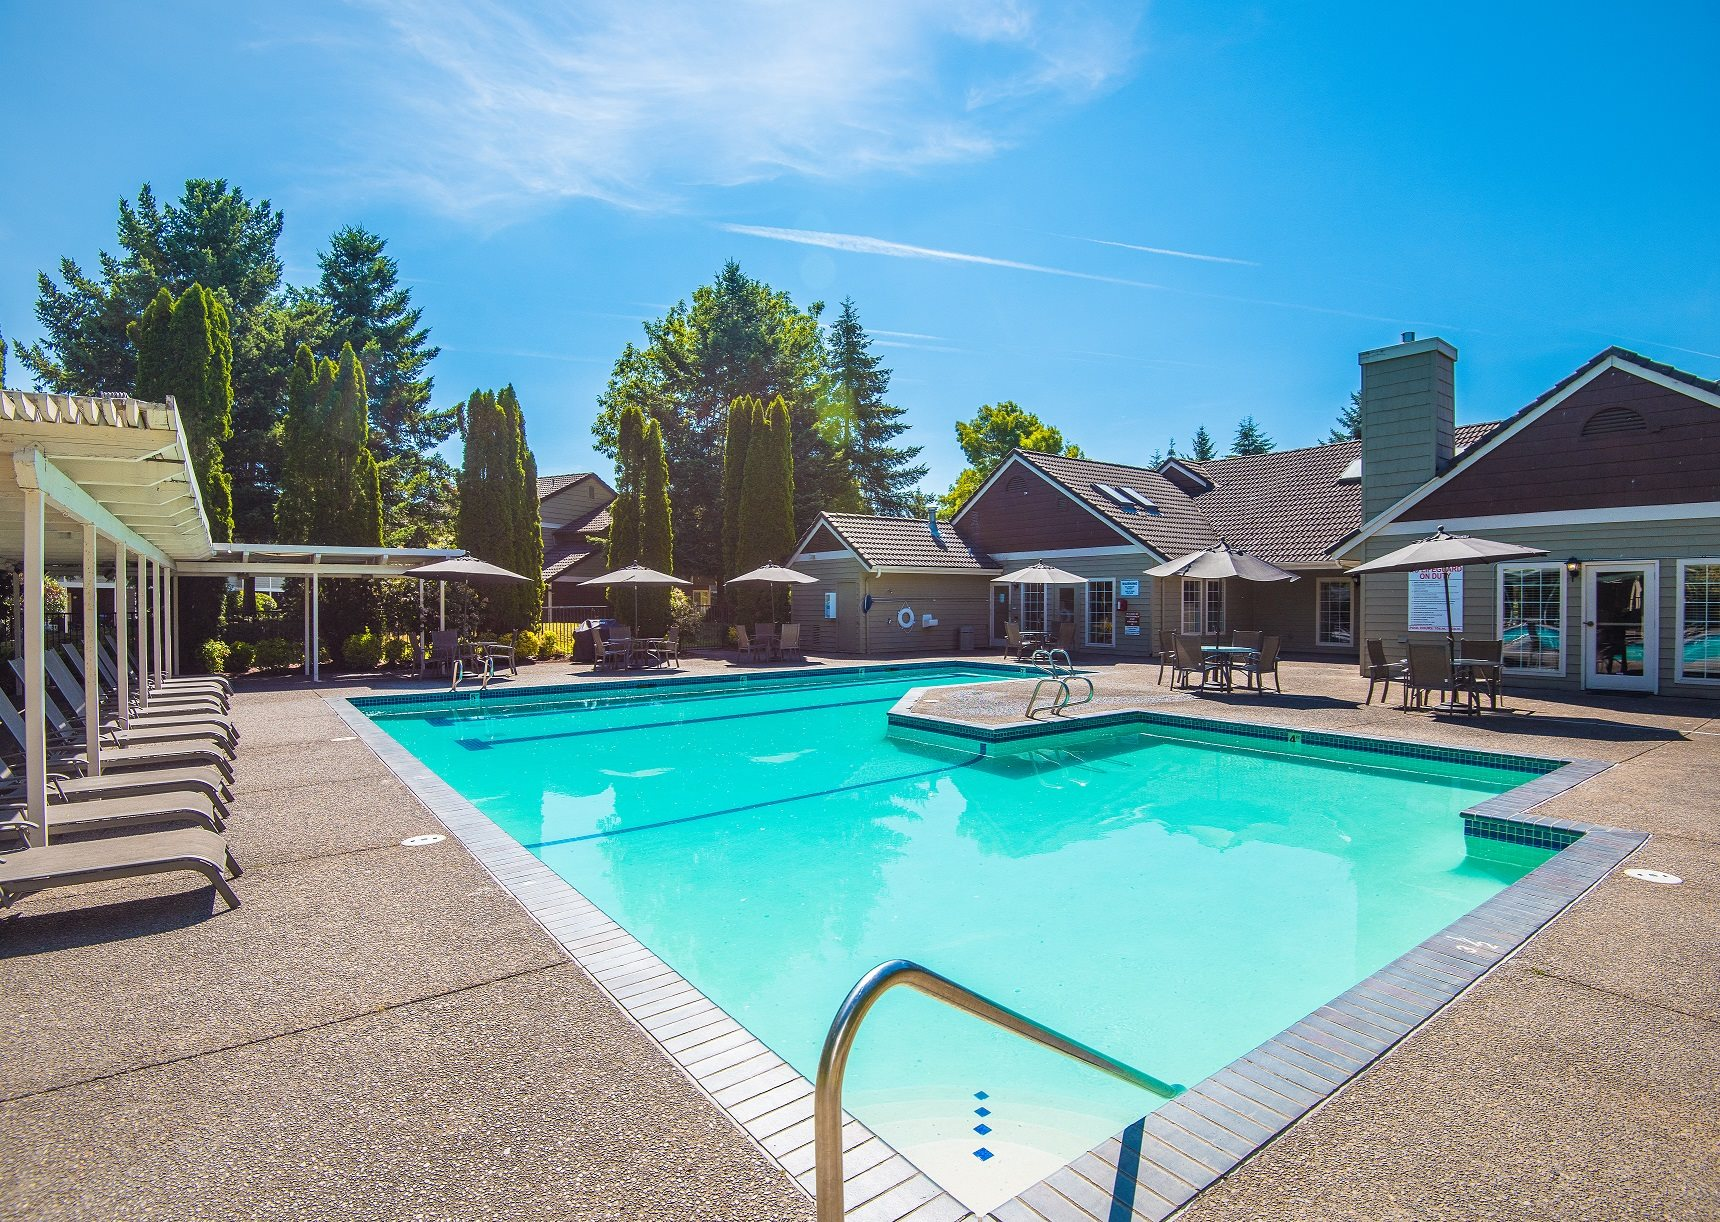 Creekside Village Seasonal Swimming Pool